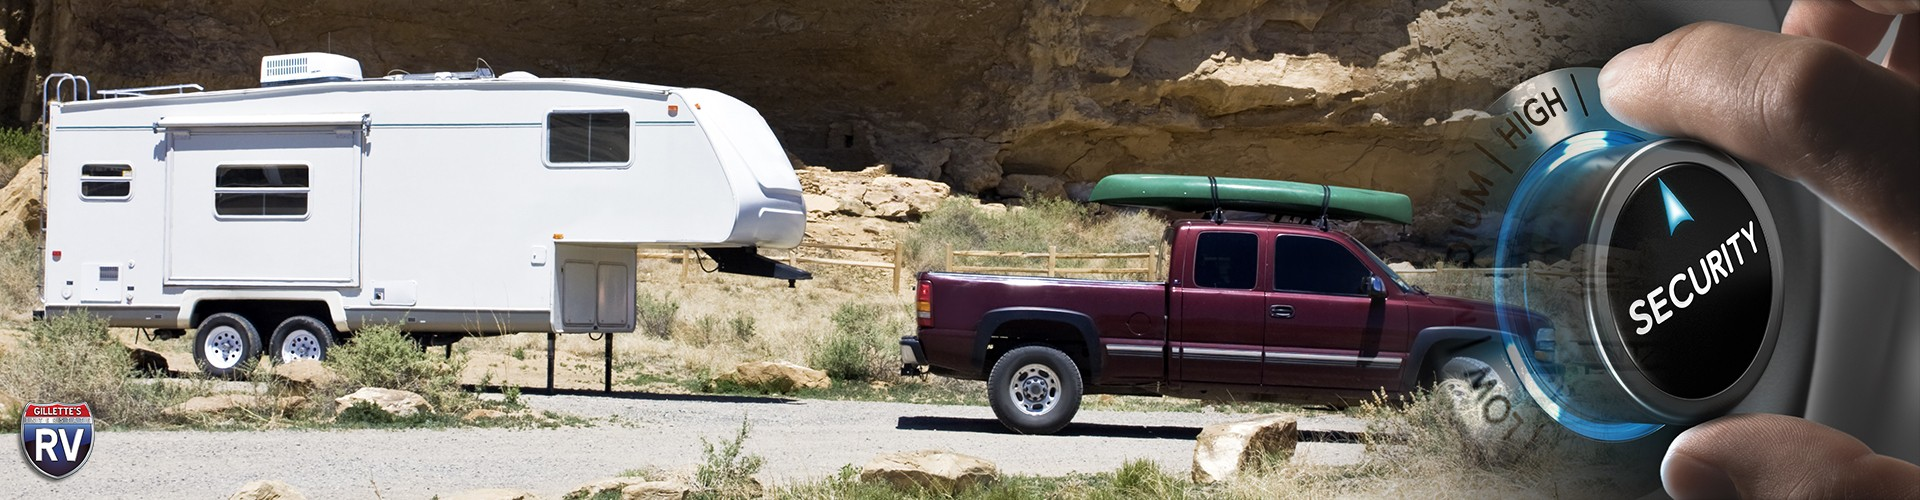 Camping rv security